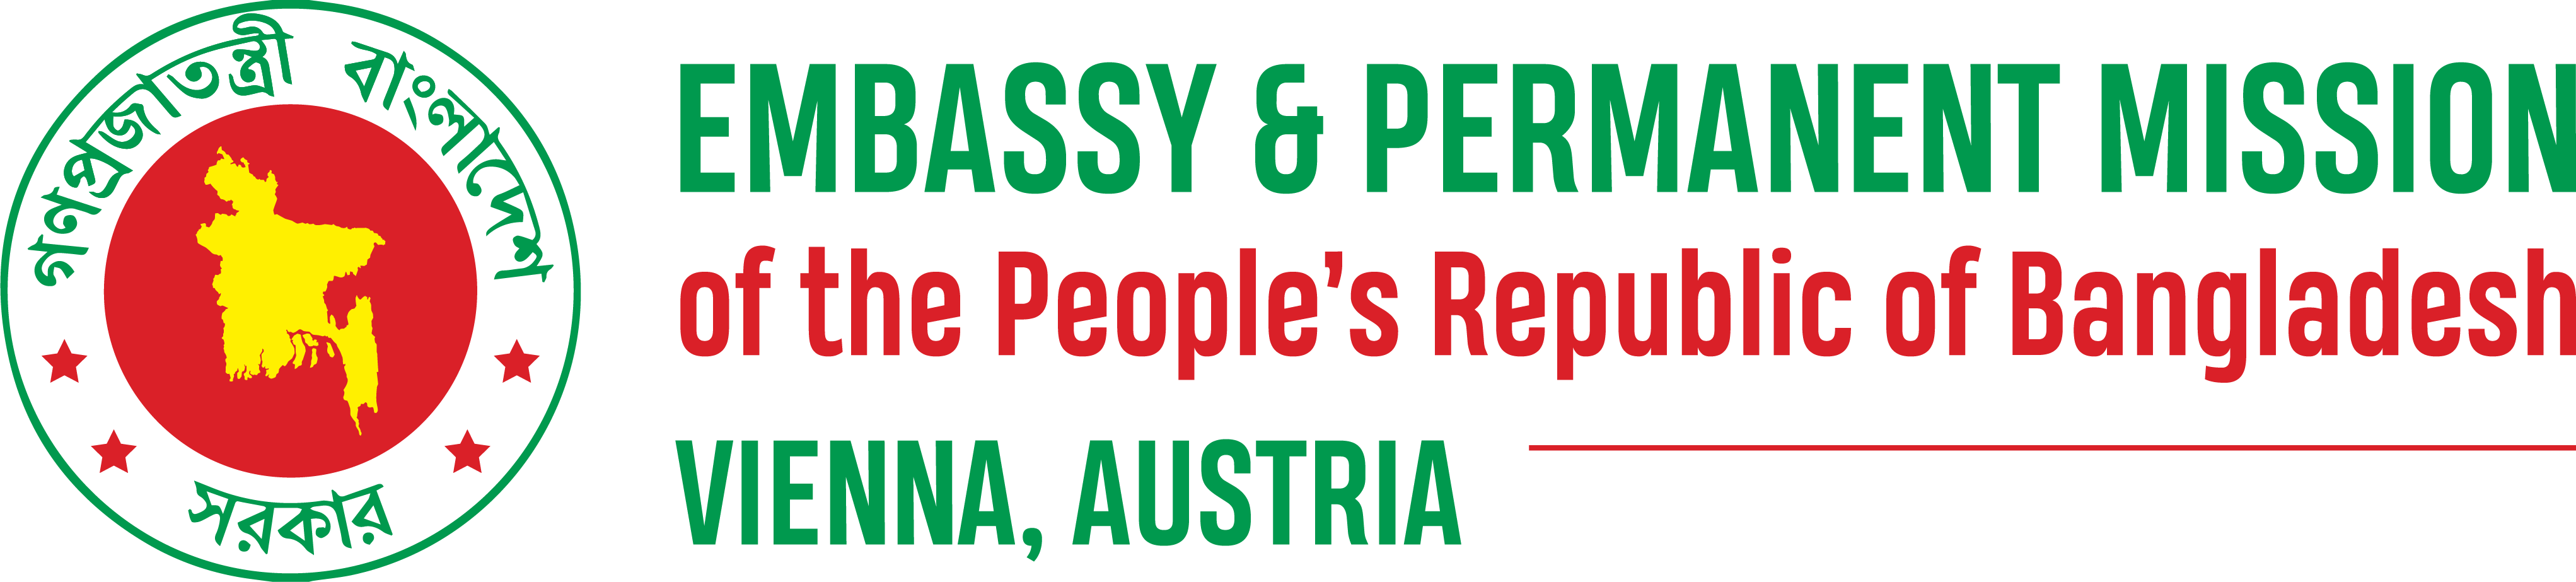 Embassy & Permanent Mission of the People's Republic of Bangladesh,